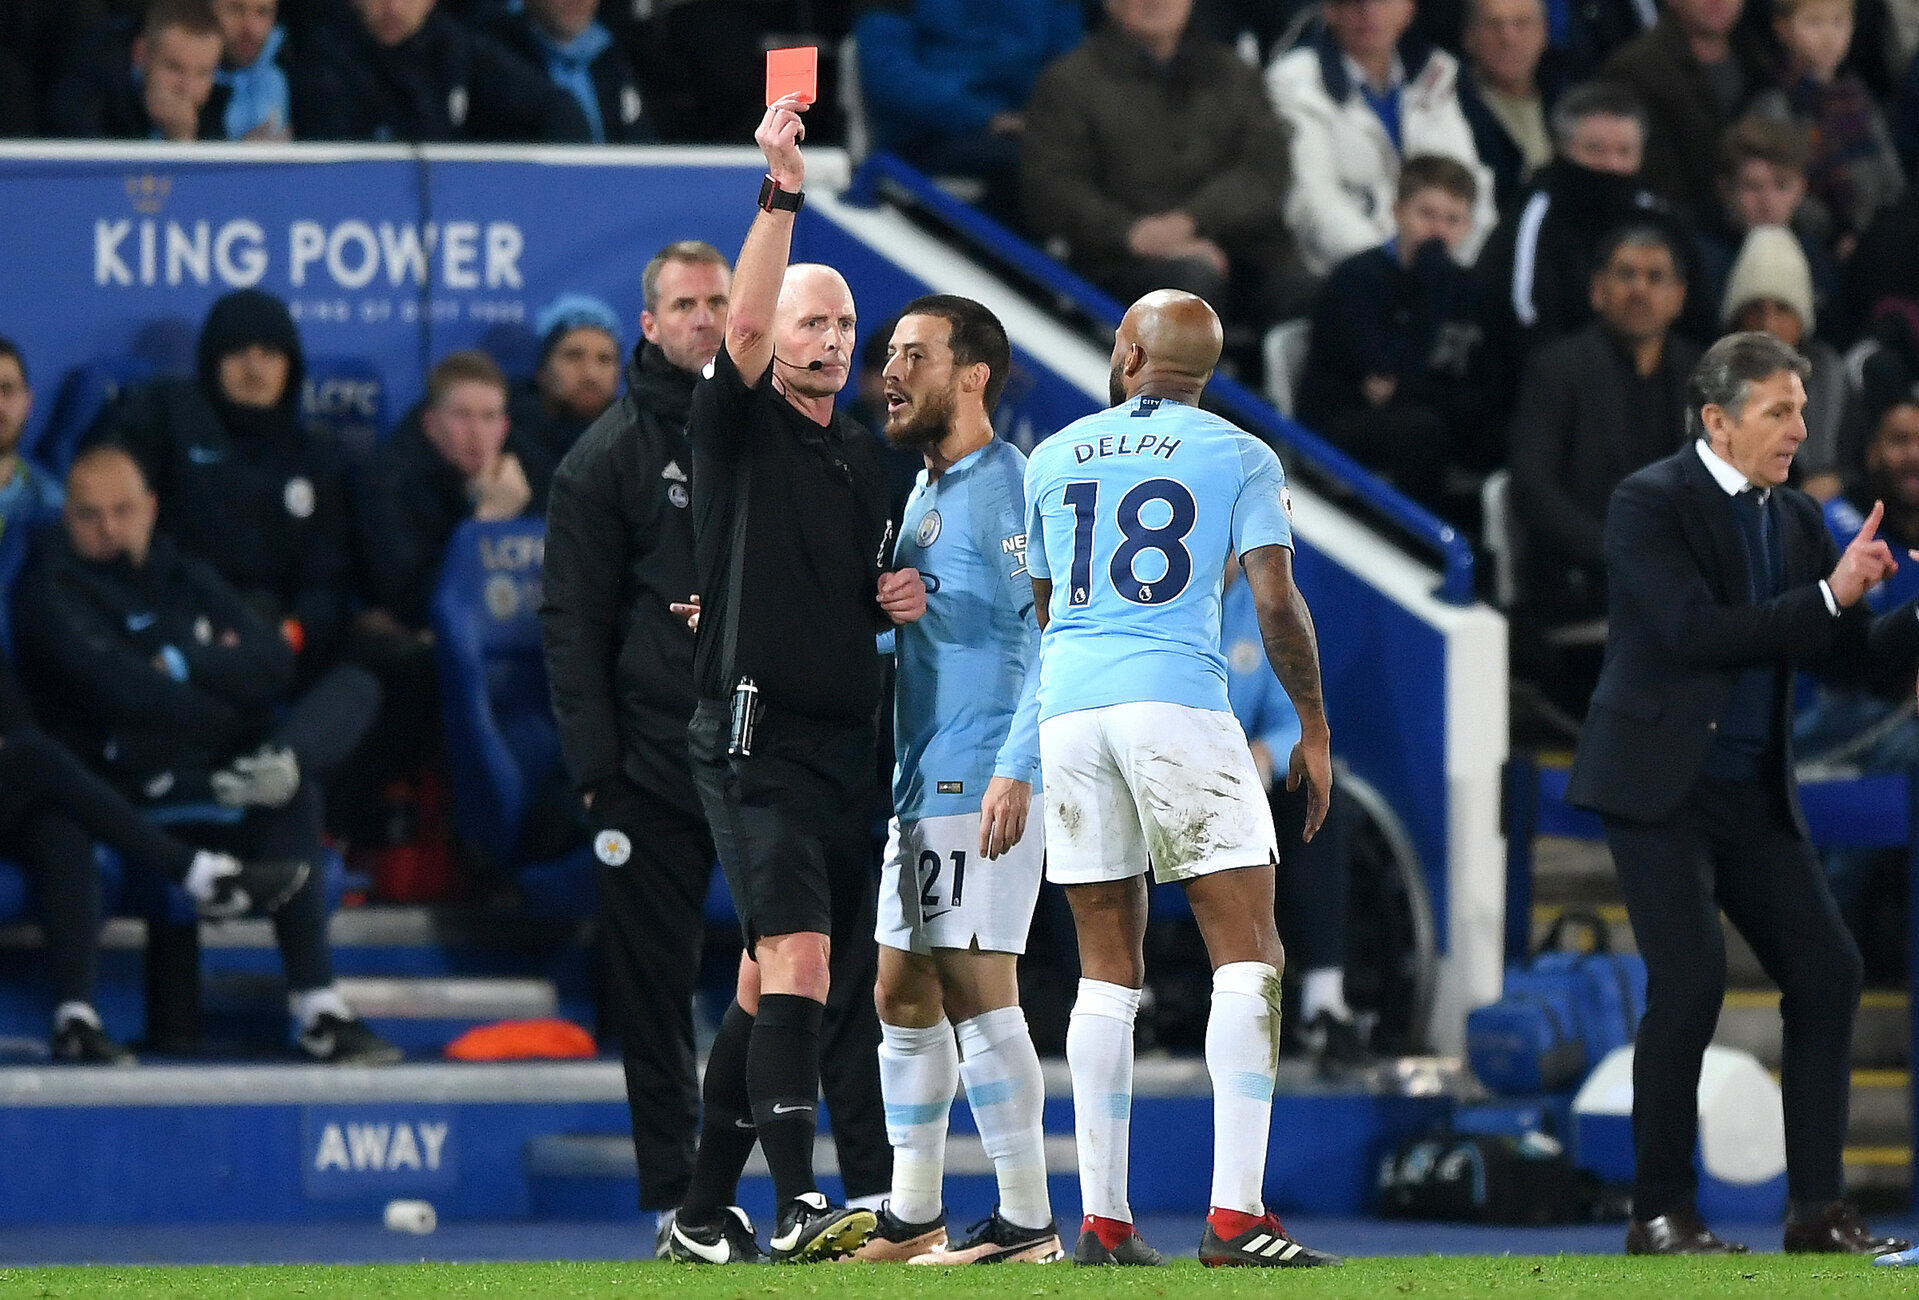 LEICESTER, ENGLAND - DECEMBER 26:  Fabian Delph of Manchester City is shown a red card by referee Mike Dean during the Premier League match between Leicester City and Manchester City at The King Power Stadium on December 26, 2018 in Leicester, United Kingdom.  (Photo by Shaun Botterill/Getty Images)